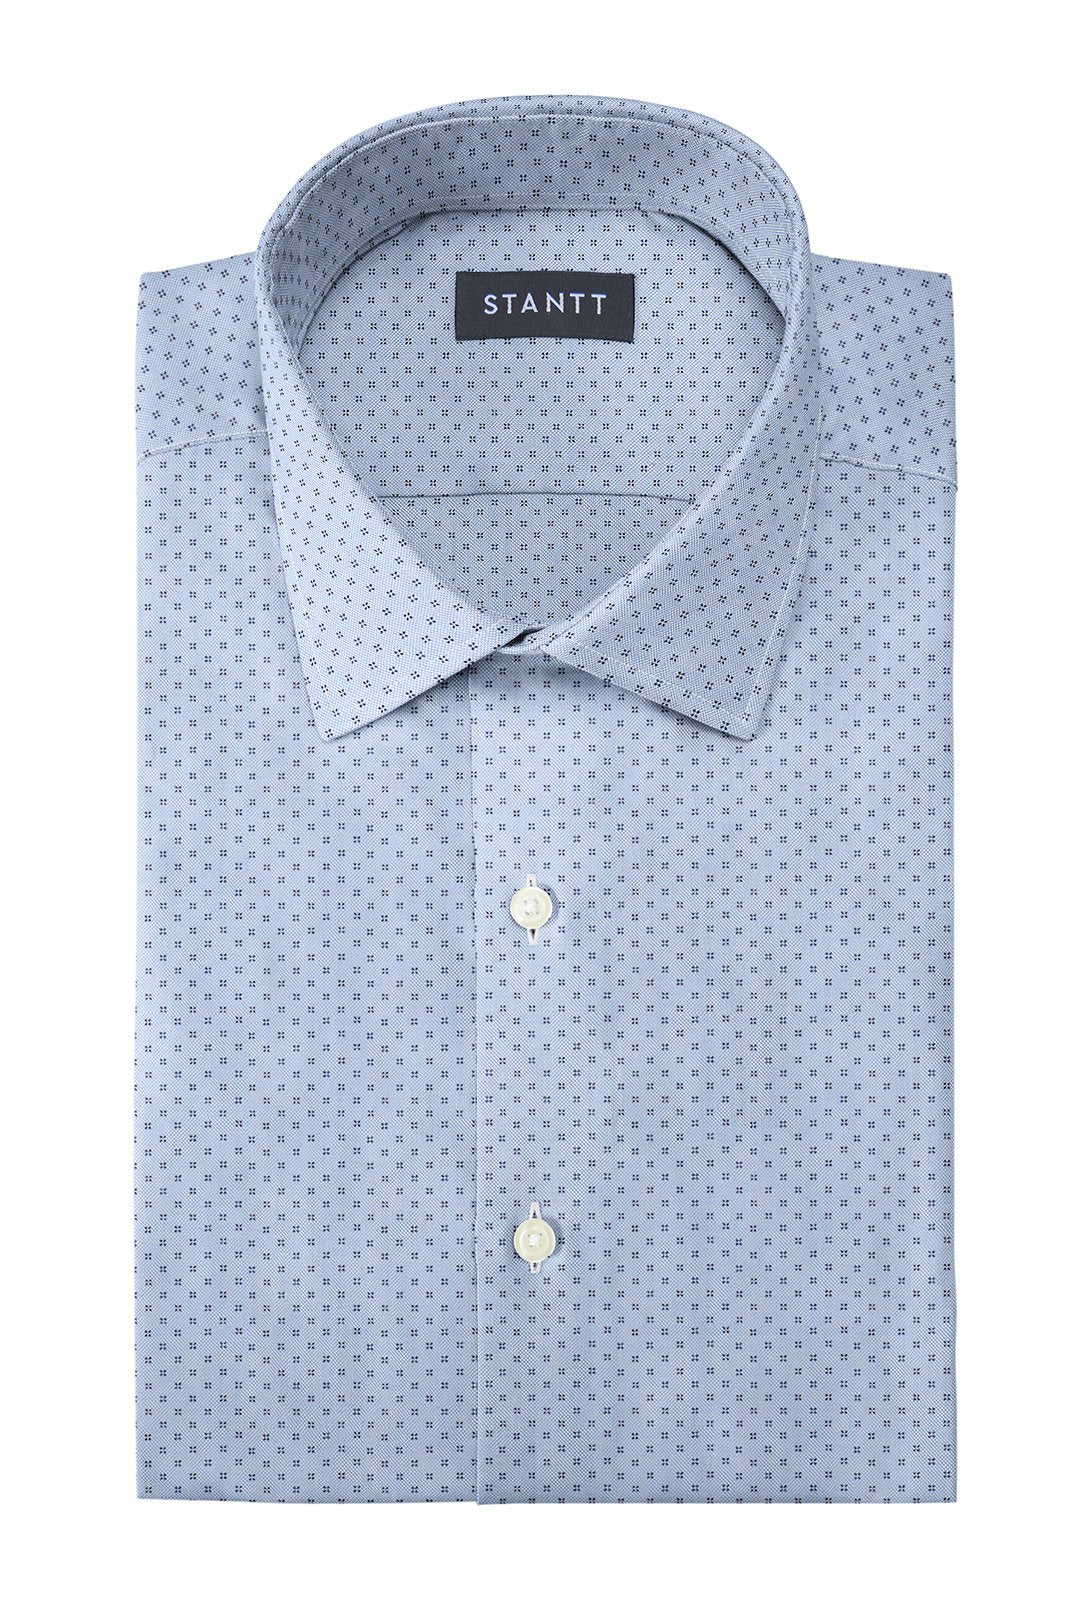 Light Blue Pinpoint Dot: Modified-Spread Collar, French Cuff